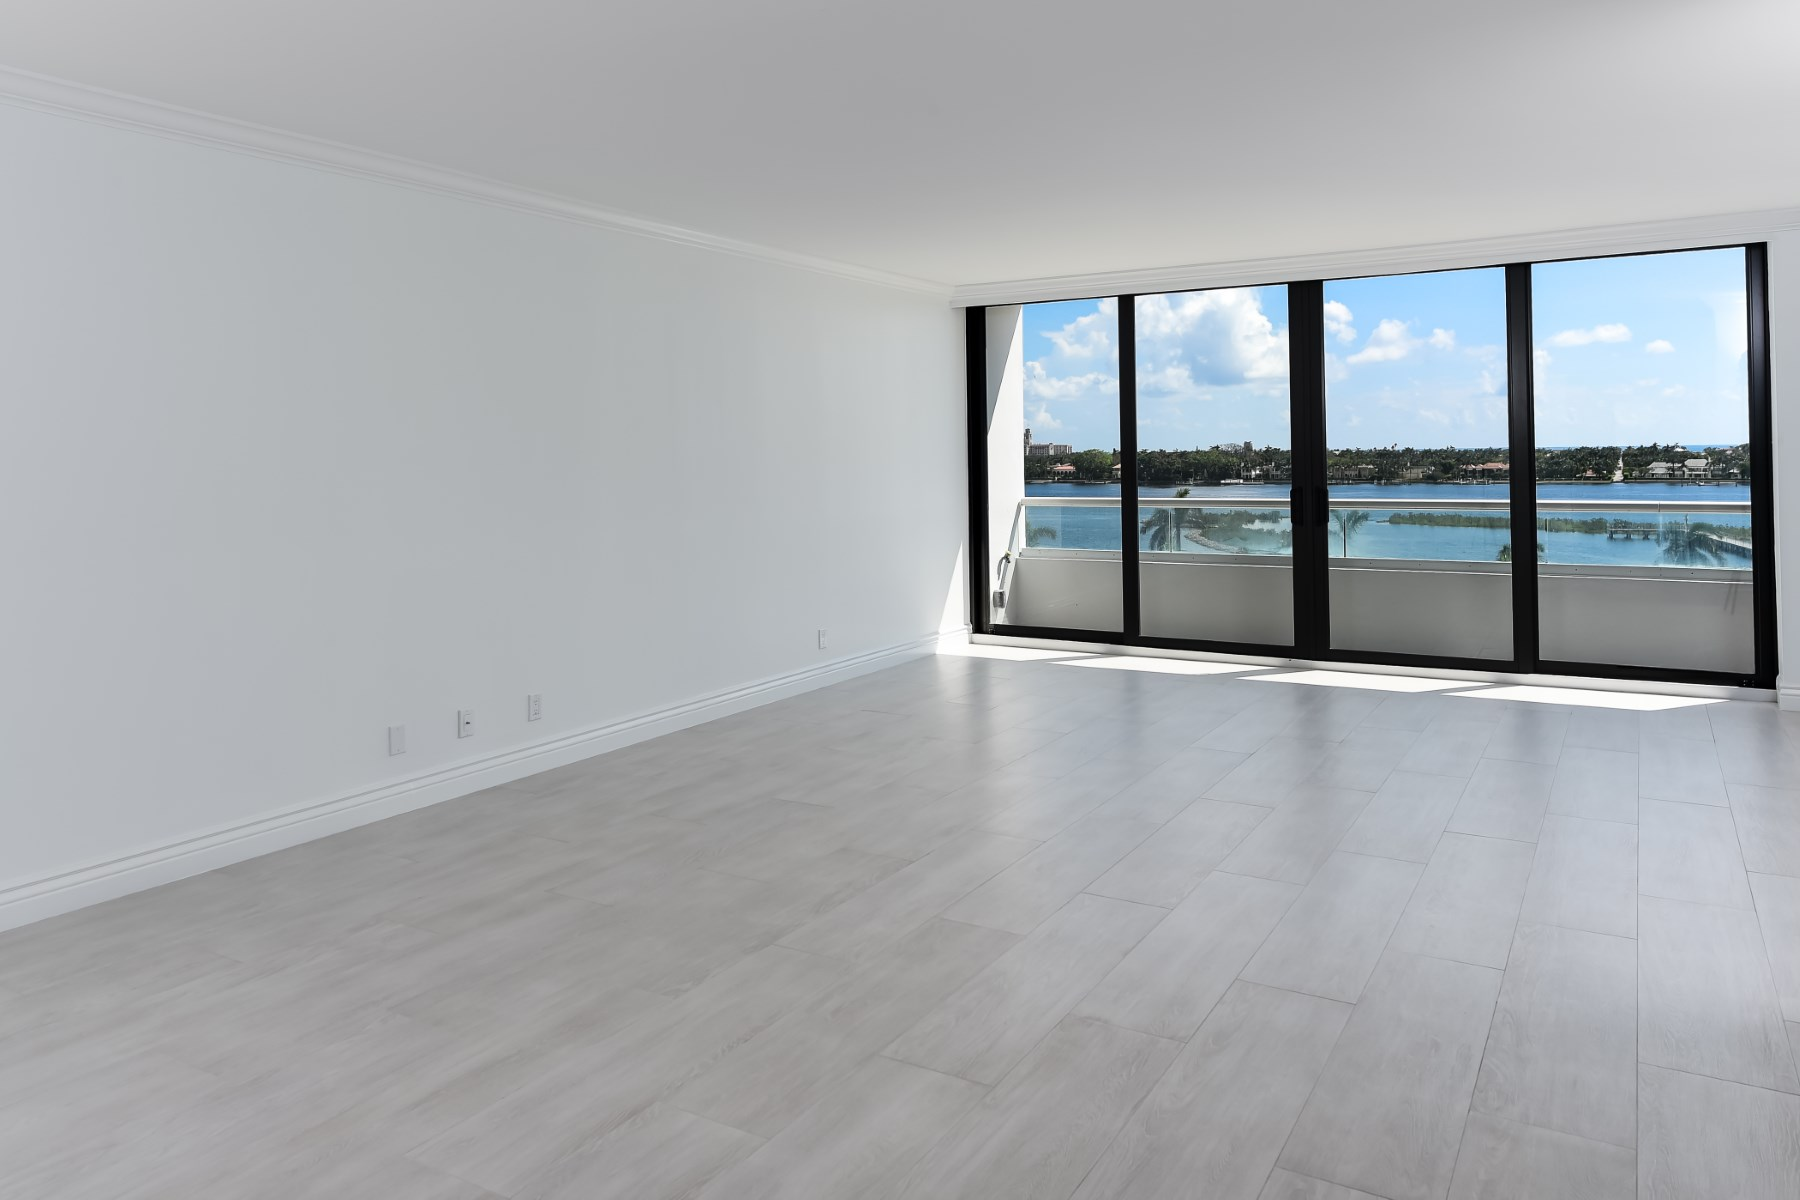 콘도미니엄 용 매매 에 Trump Plaza Waterview Apartment 529 S Flagler Drive 6F West Palm Beach, 플로리다 33401 미국